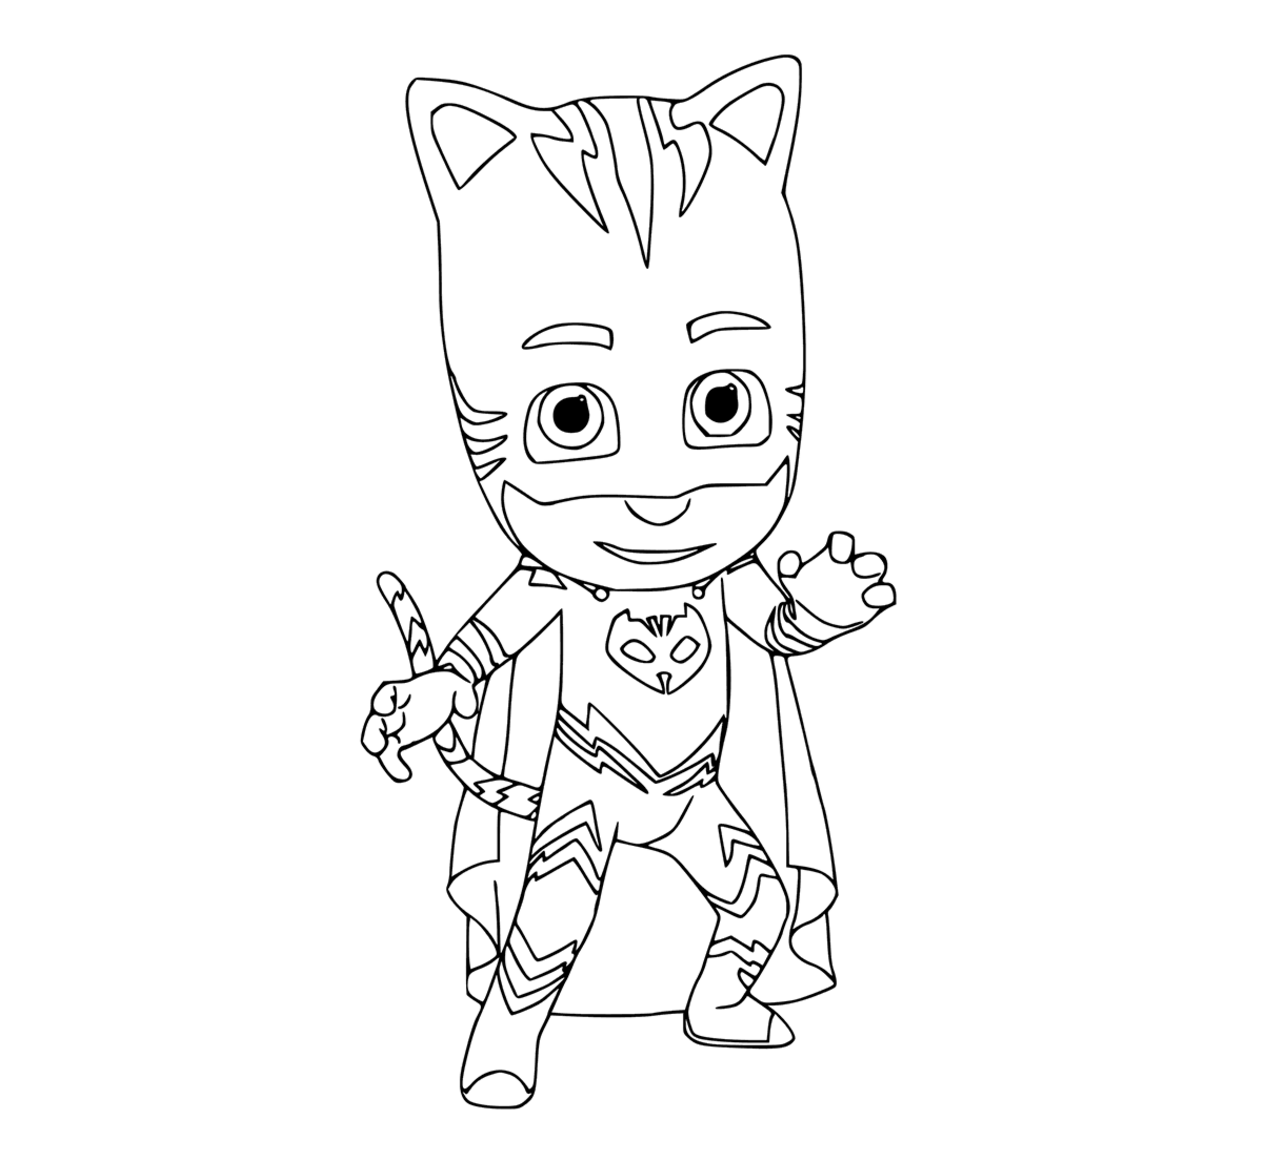 PJ Masks coloring pages to download and print for free | Pj Masks ...